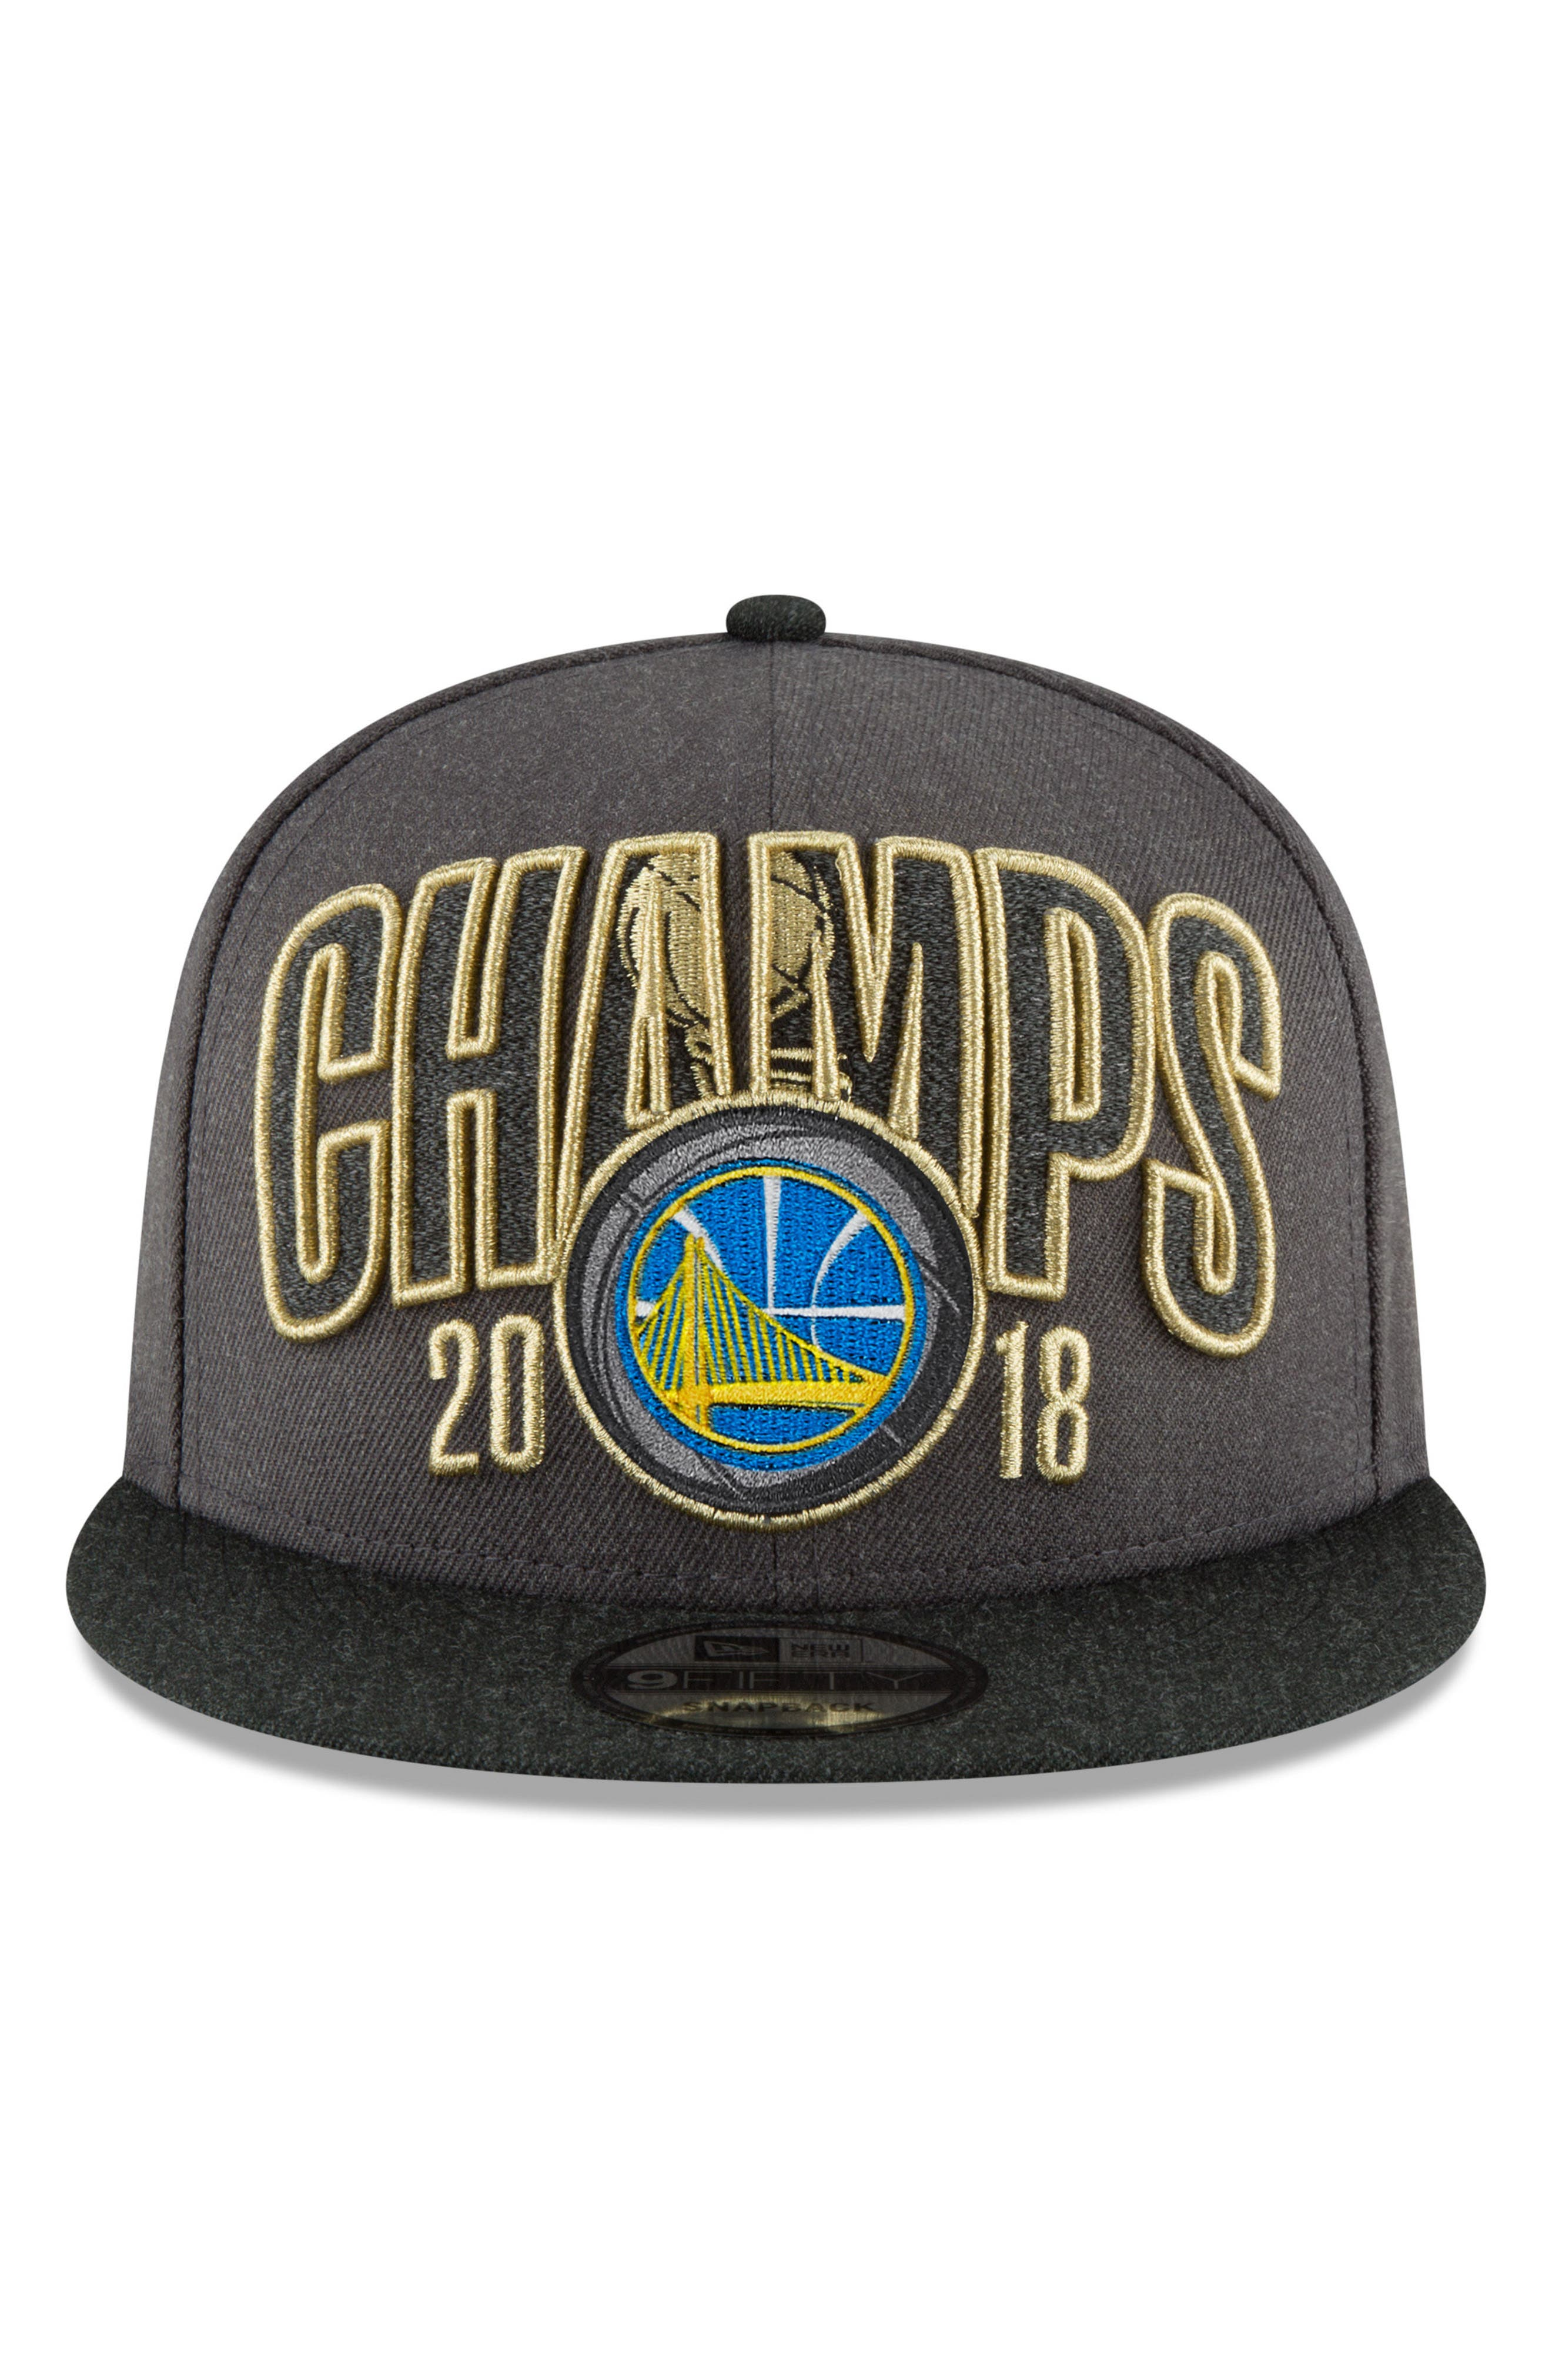 2018 NBA Champions - Golden State Warriors 9Fifty Snapback Cap,                             Alternate thumbnail 5, color,                             Golden State Warriors